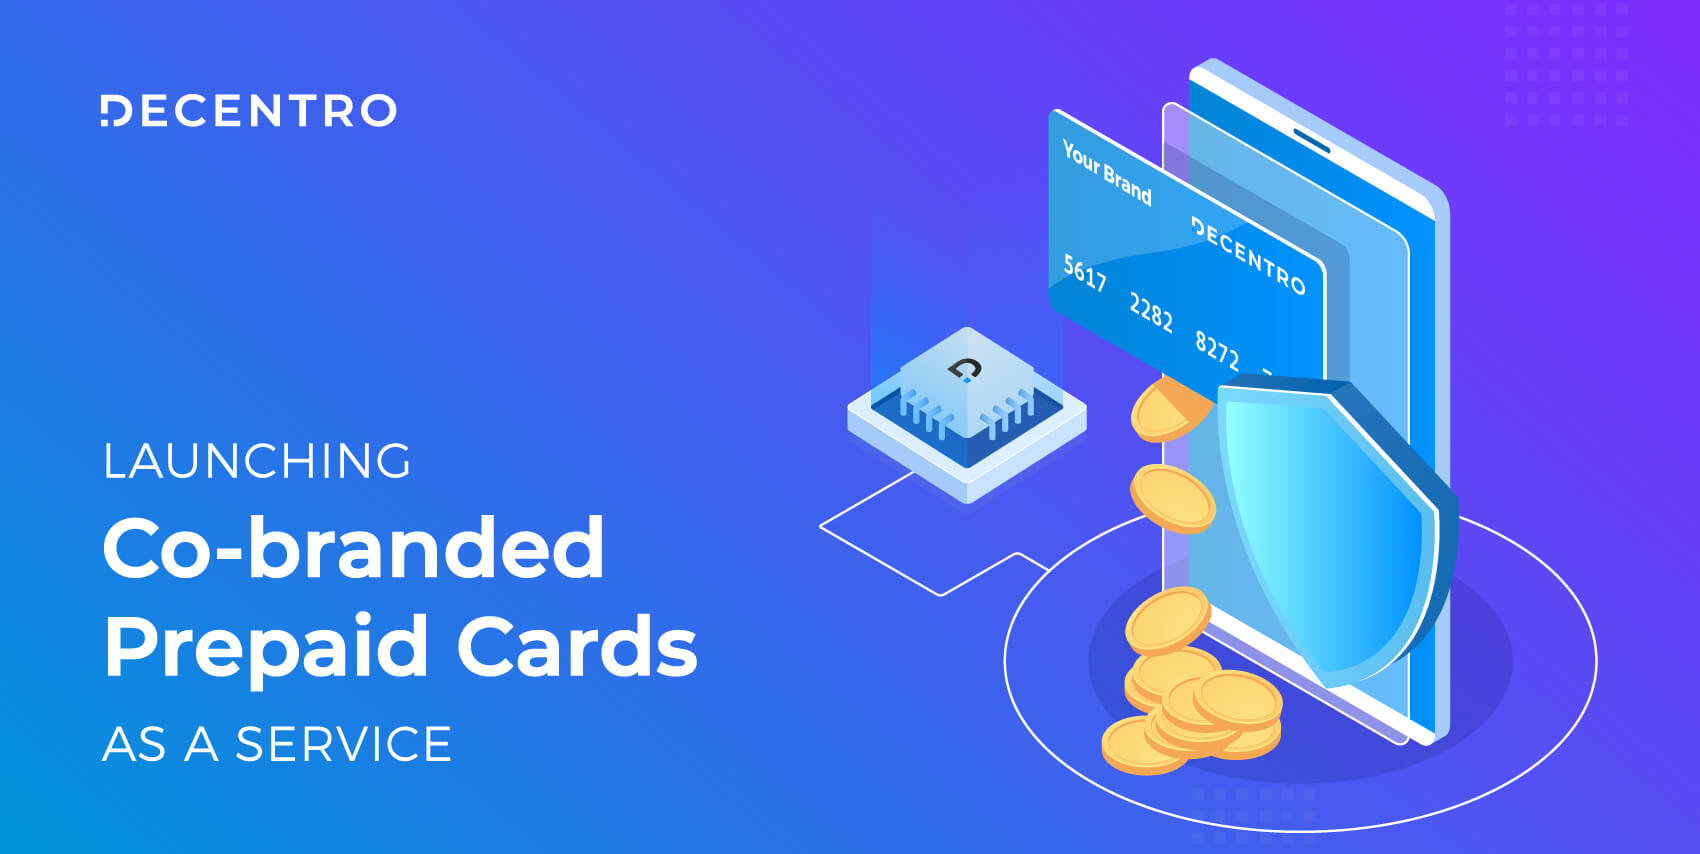 Decentro's thrilled to announce the launch Co-branded Prepaid Cards